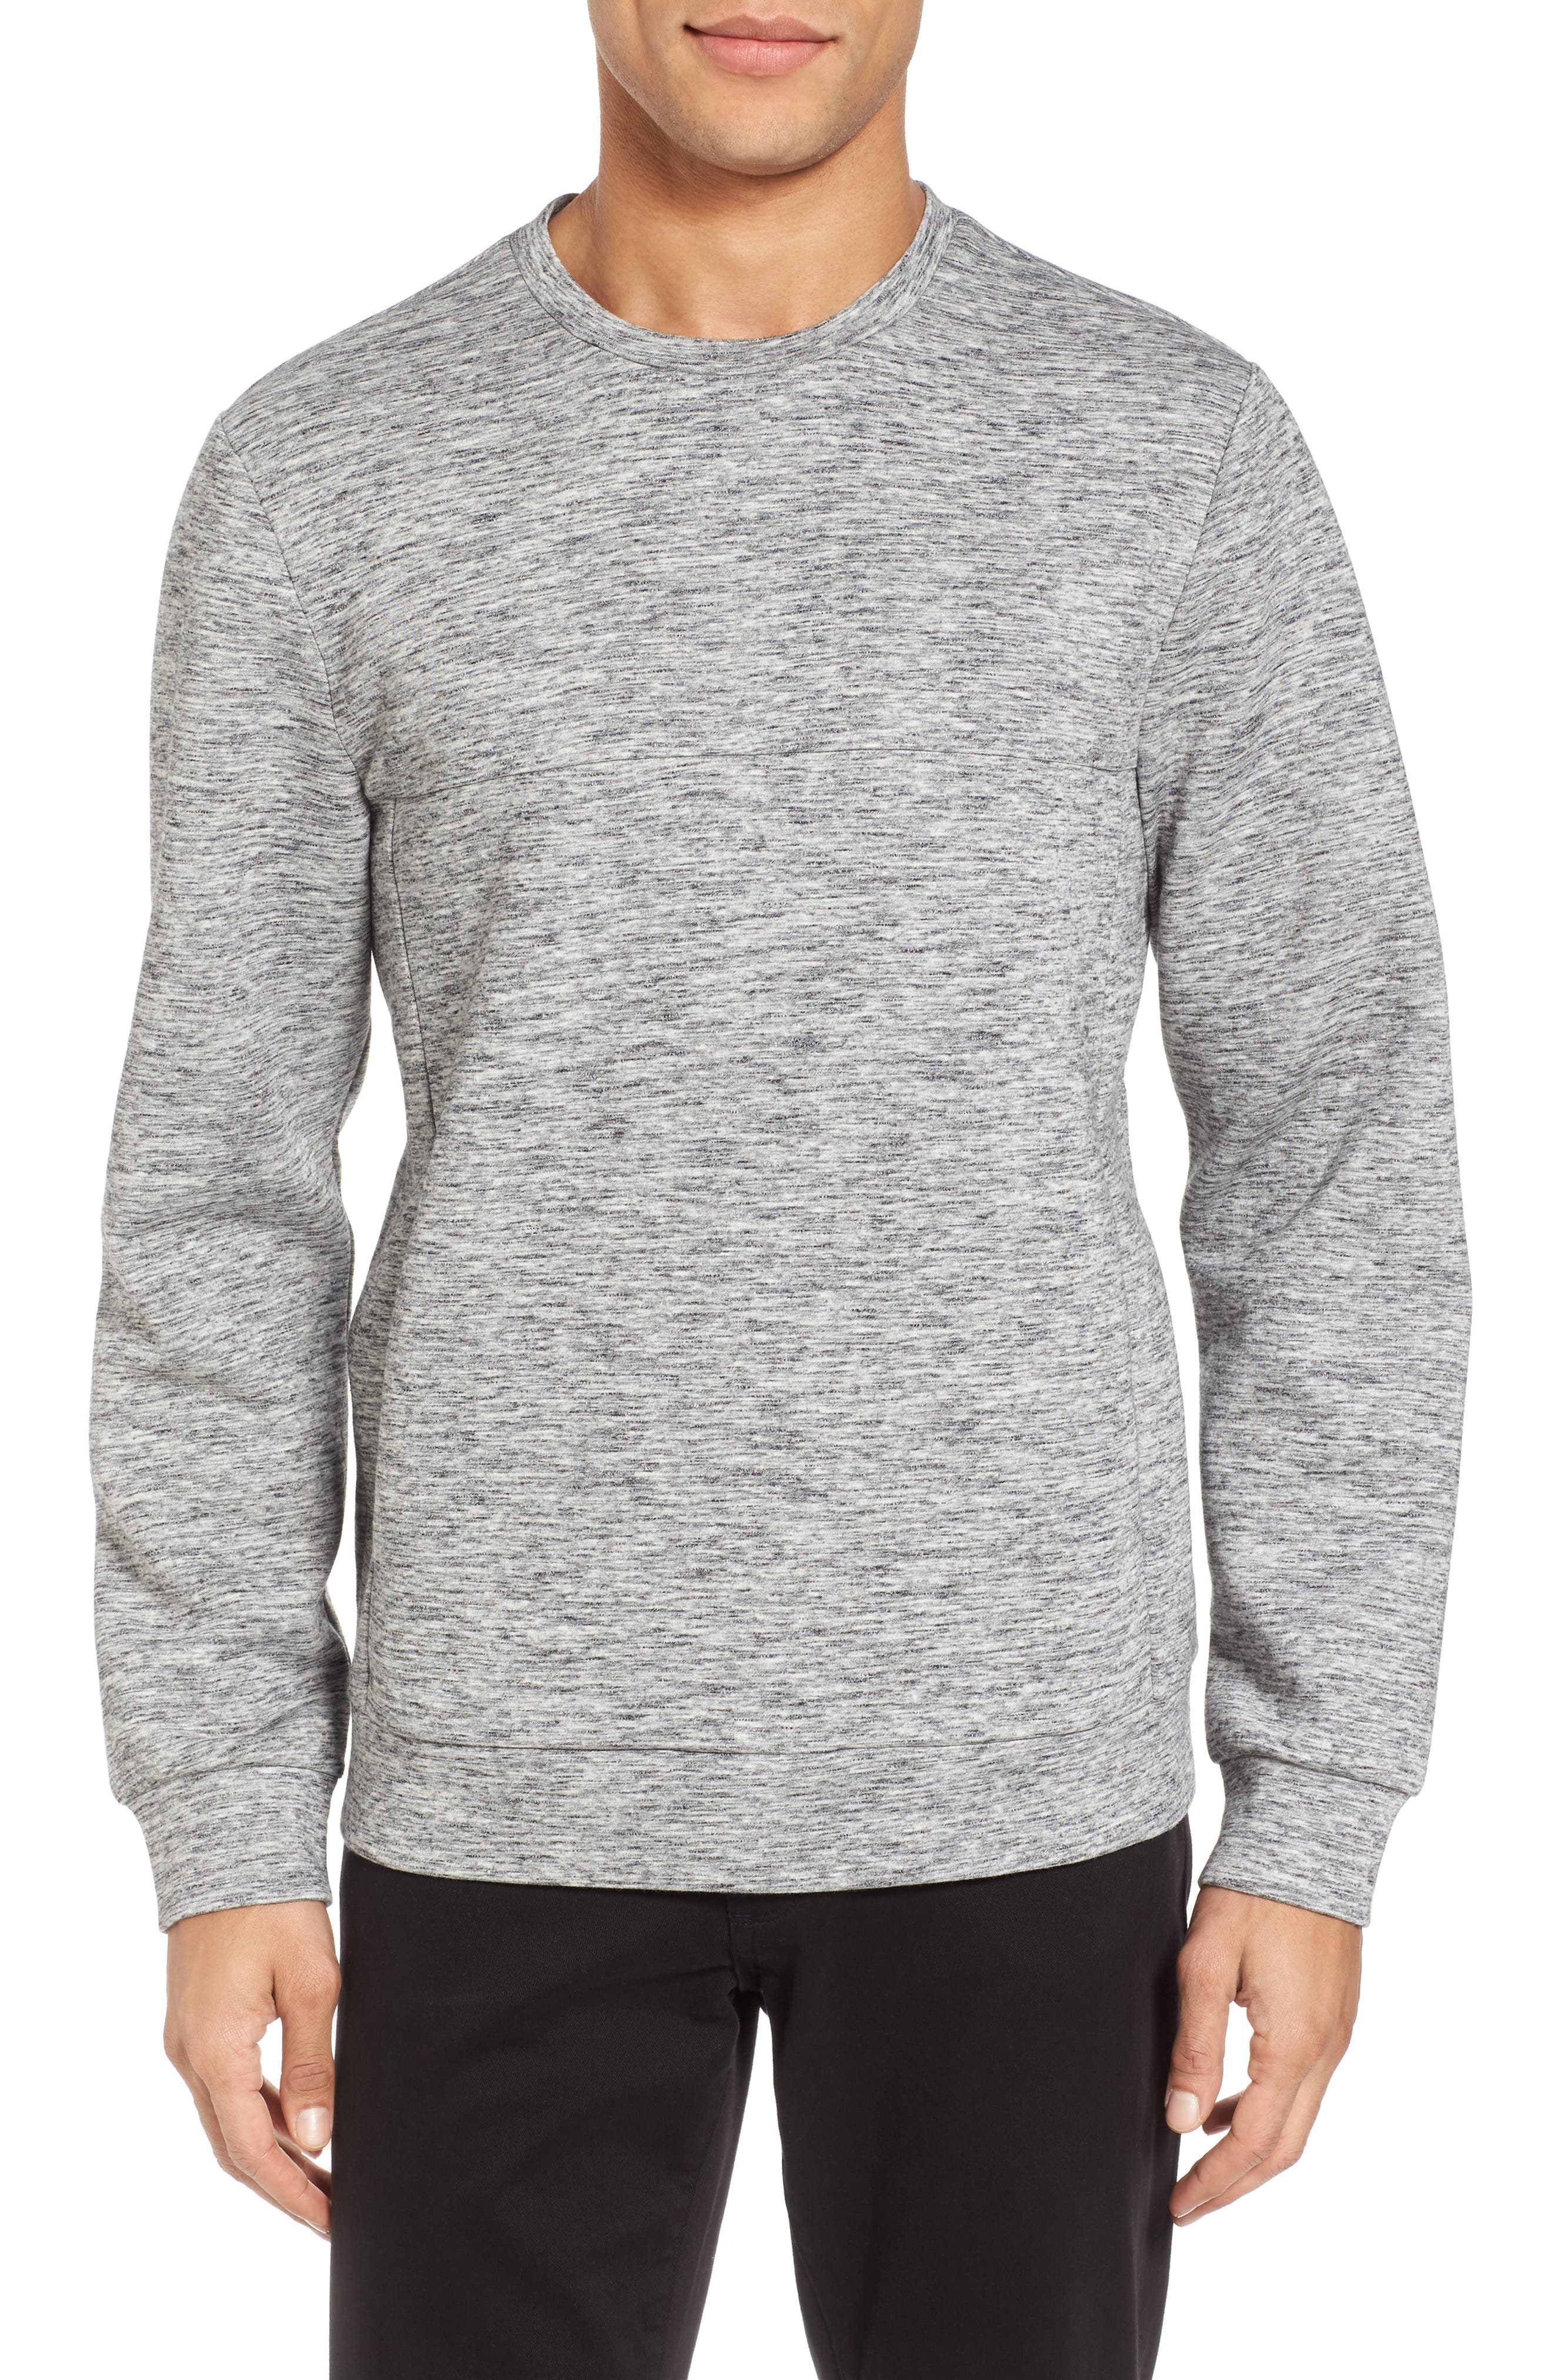 Calibrate Space Dyed Sweatshirt